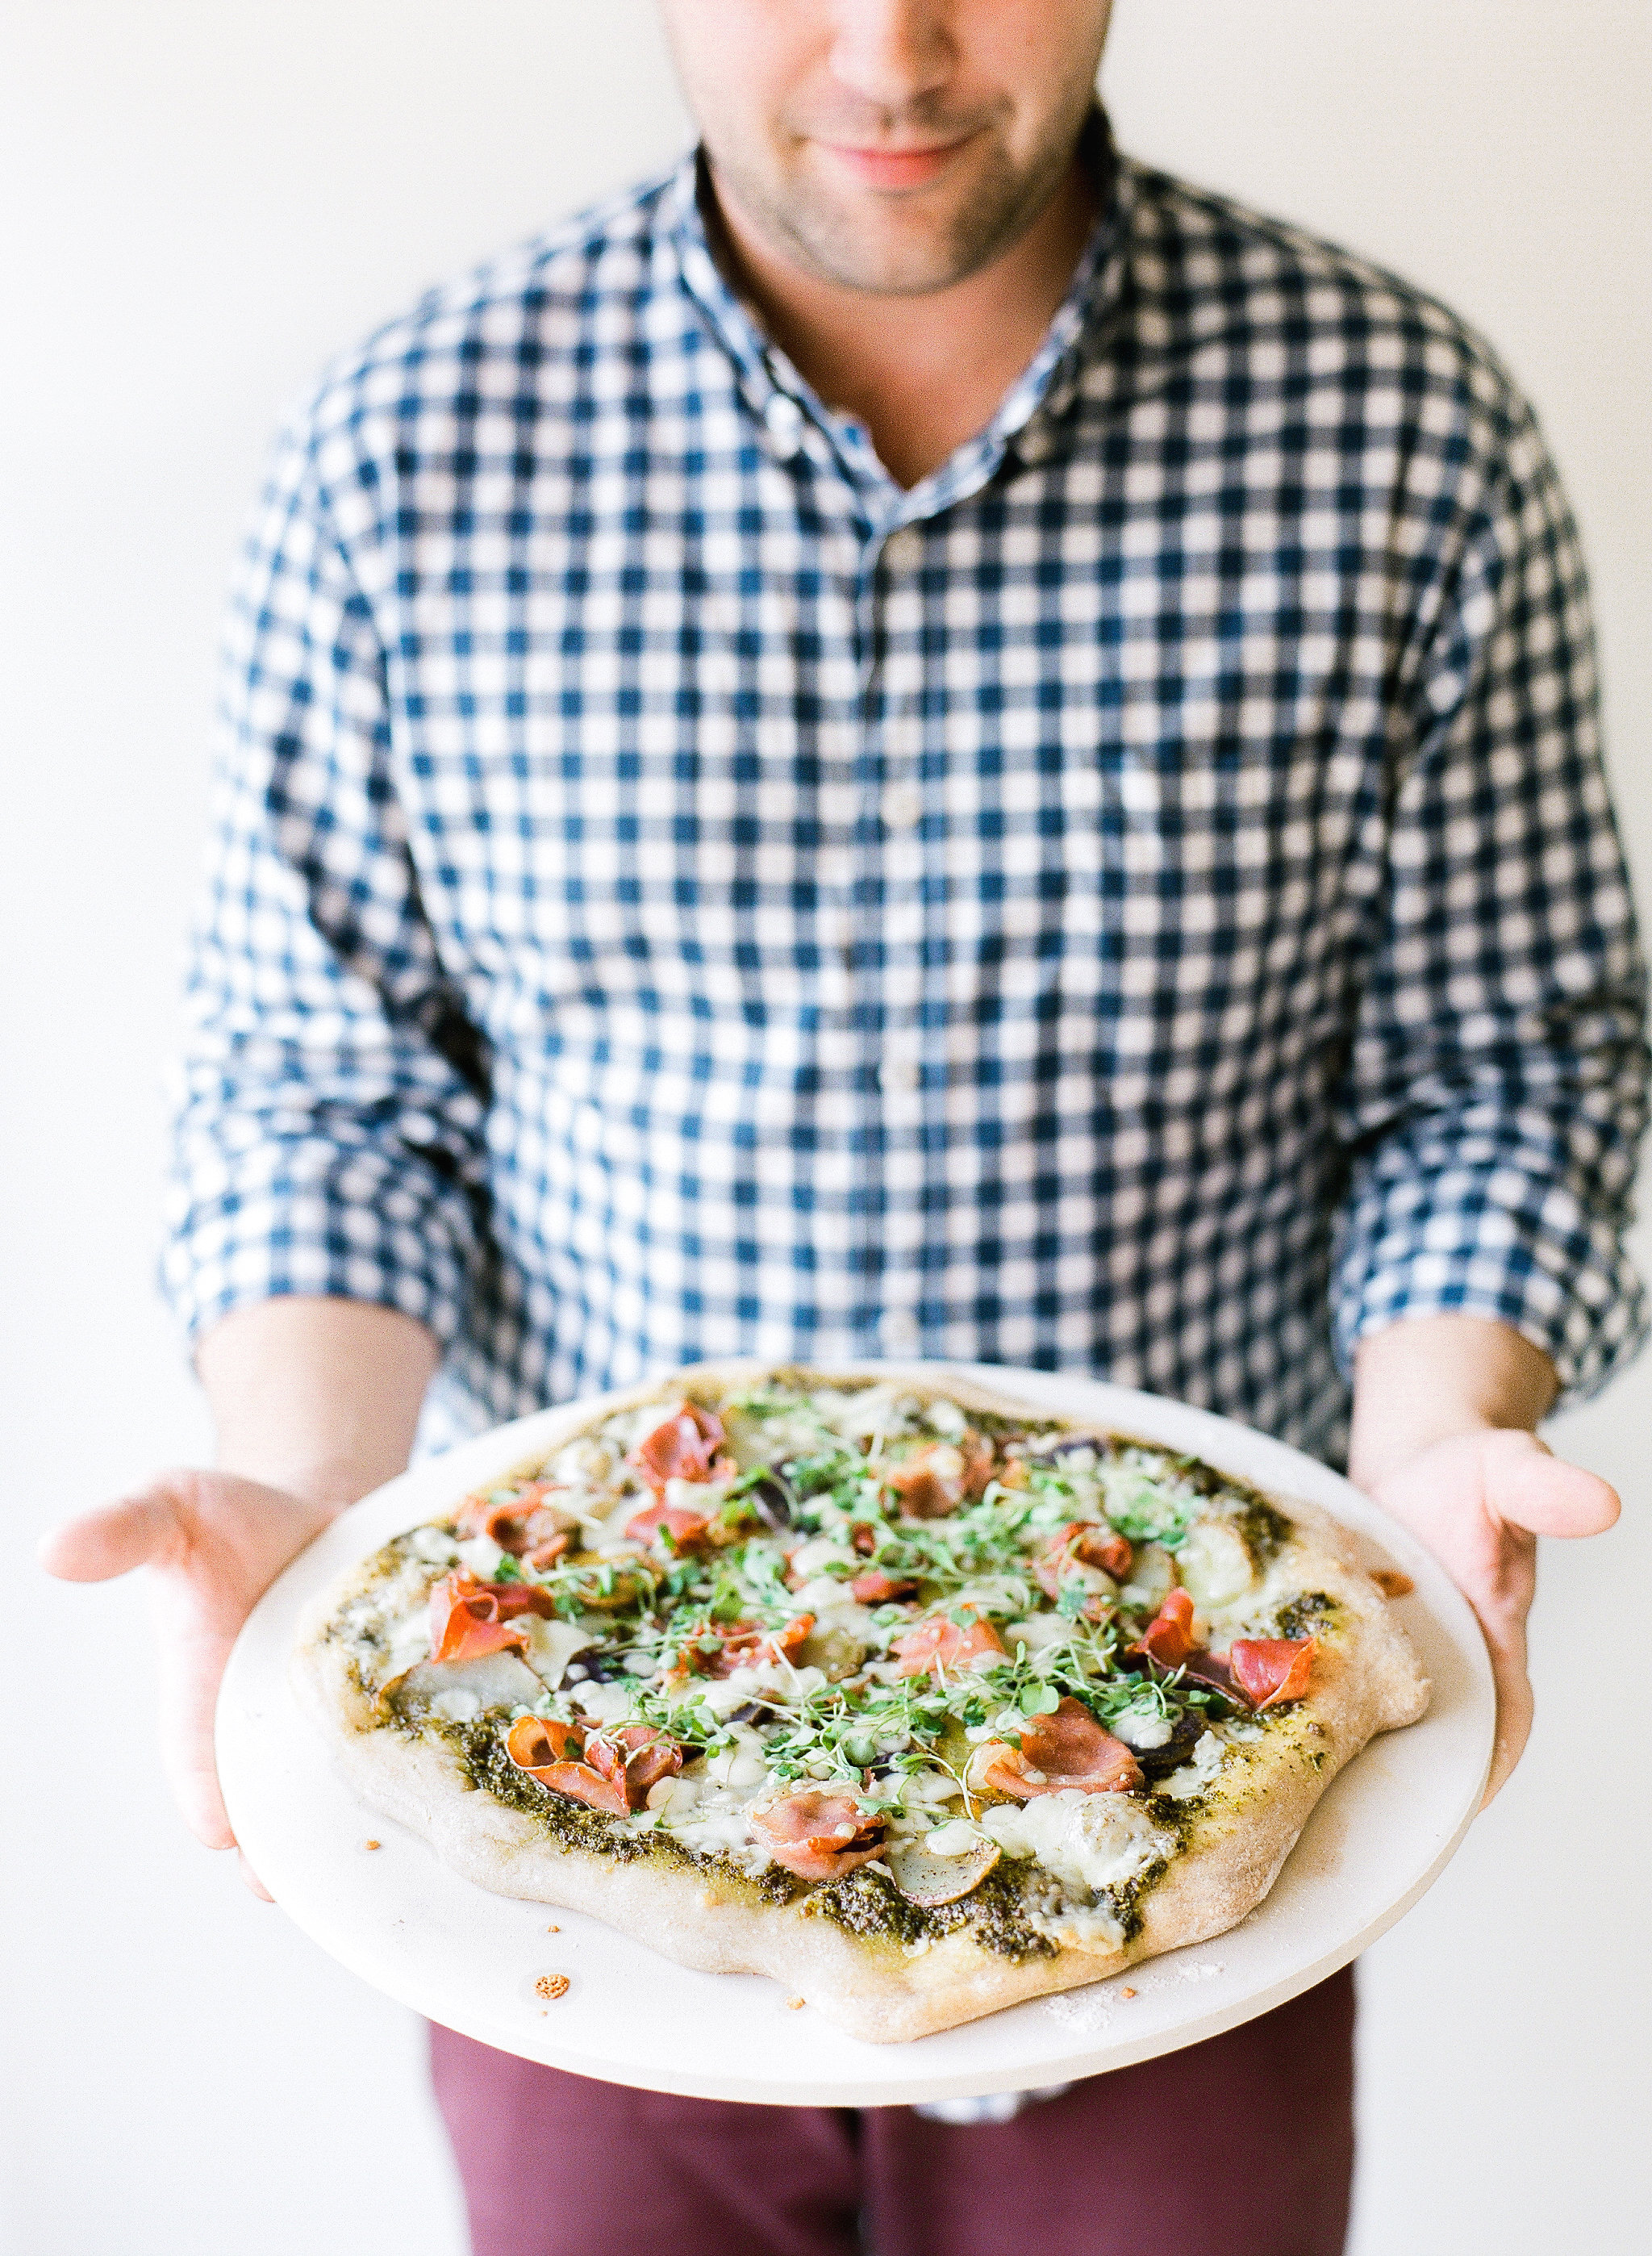 Date Night In - Make Your Own Pizza